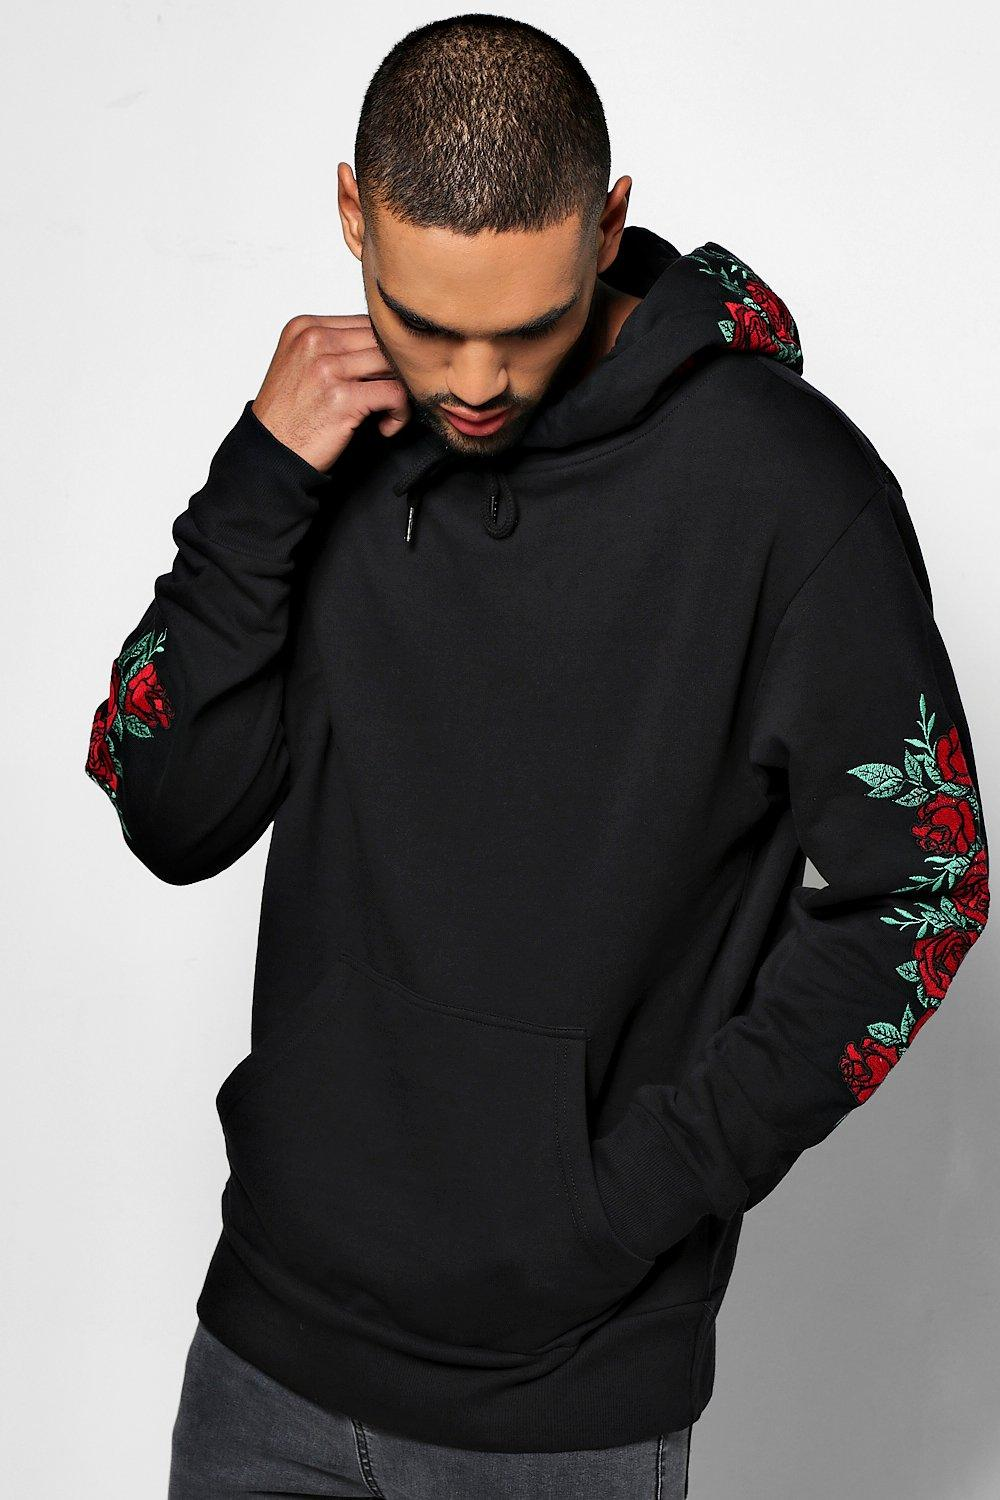 geringster Preis schön und charmant Größe 40 Rose Embroided Hoodie Over The Head - boohooMAN